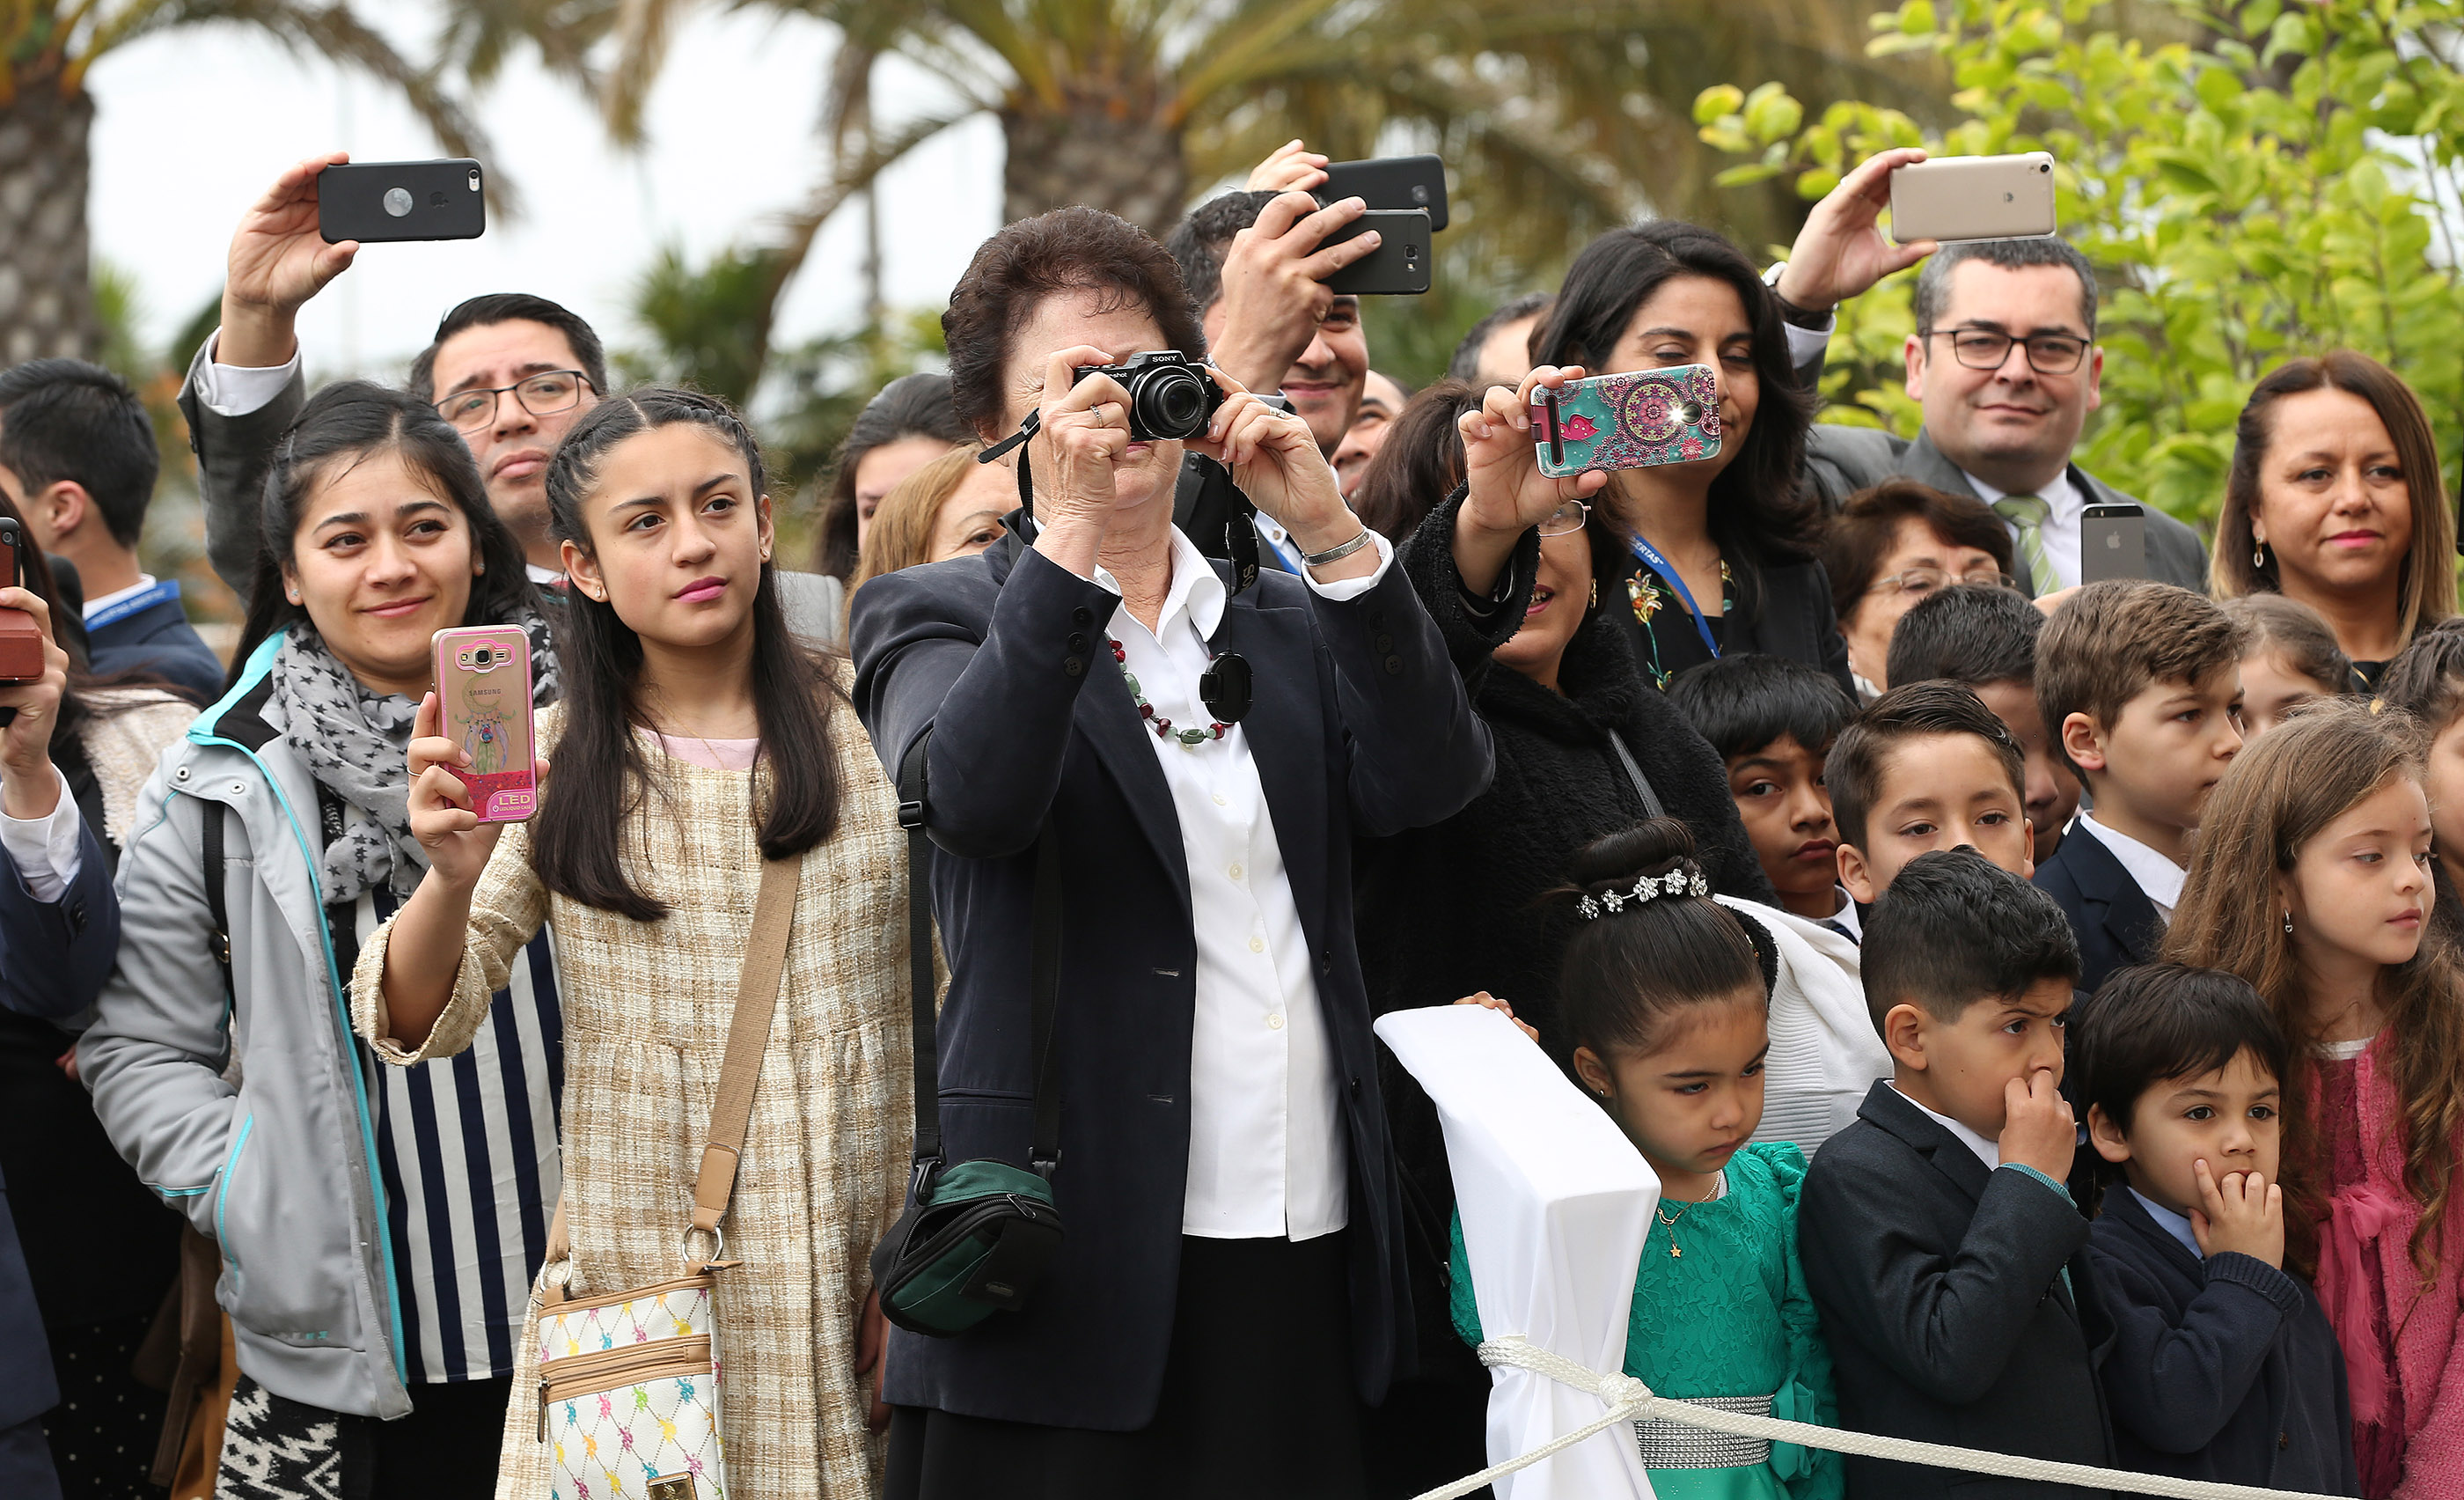 Attendees photograph the President Russell Nelson during the dedication of the Concepcion Chile Temple in Concepcion, Chile, on Sunday, Oct. 28, 2018.